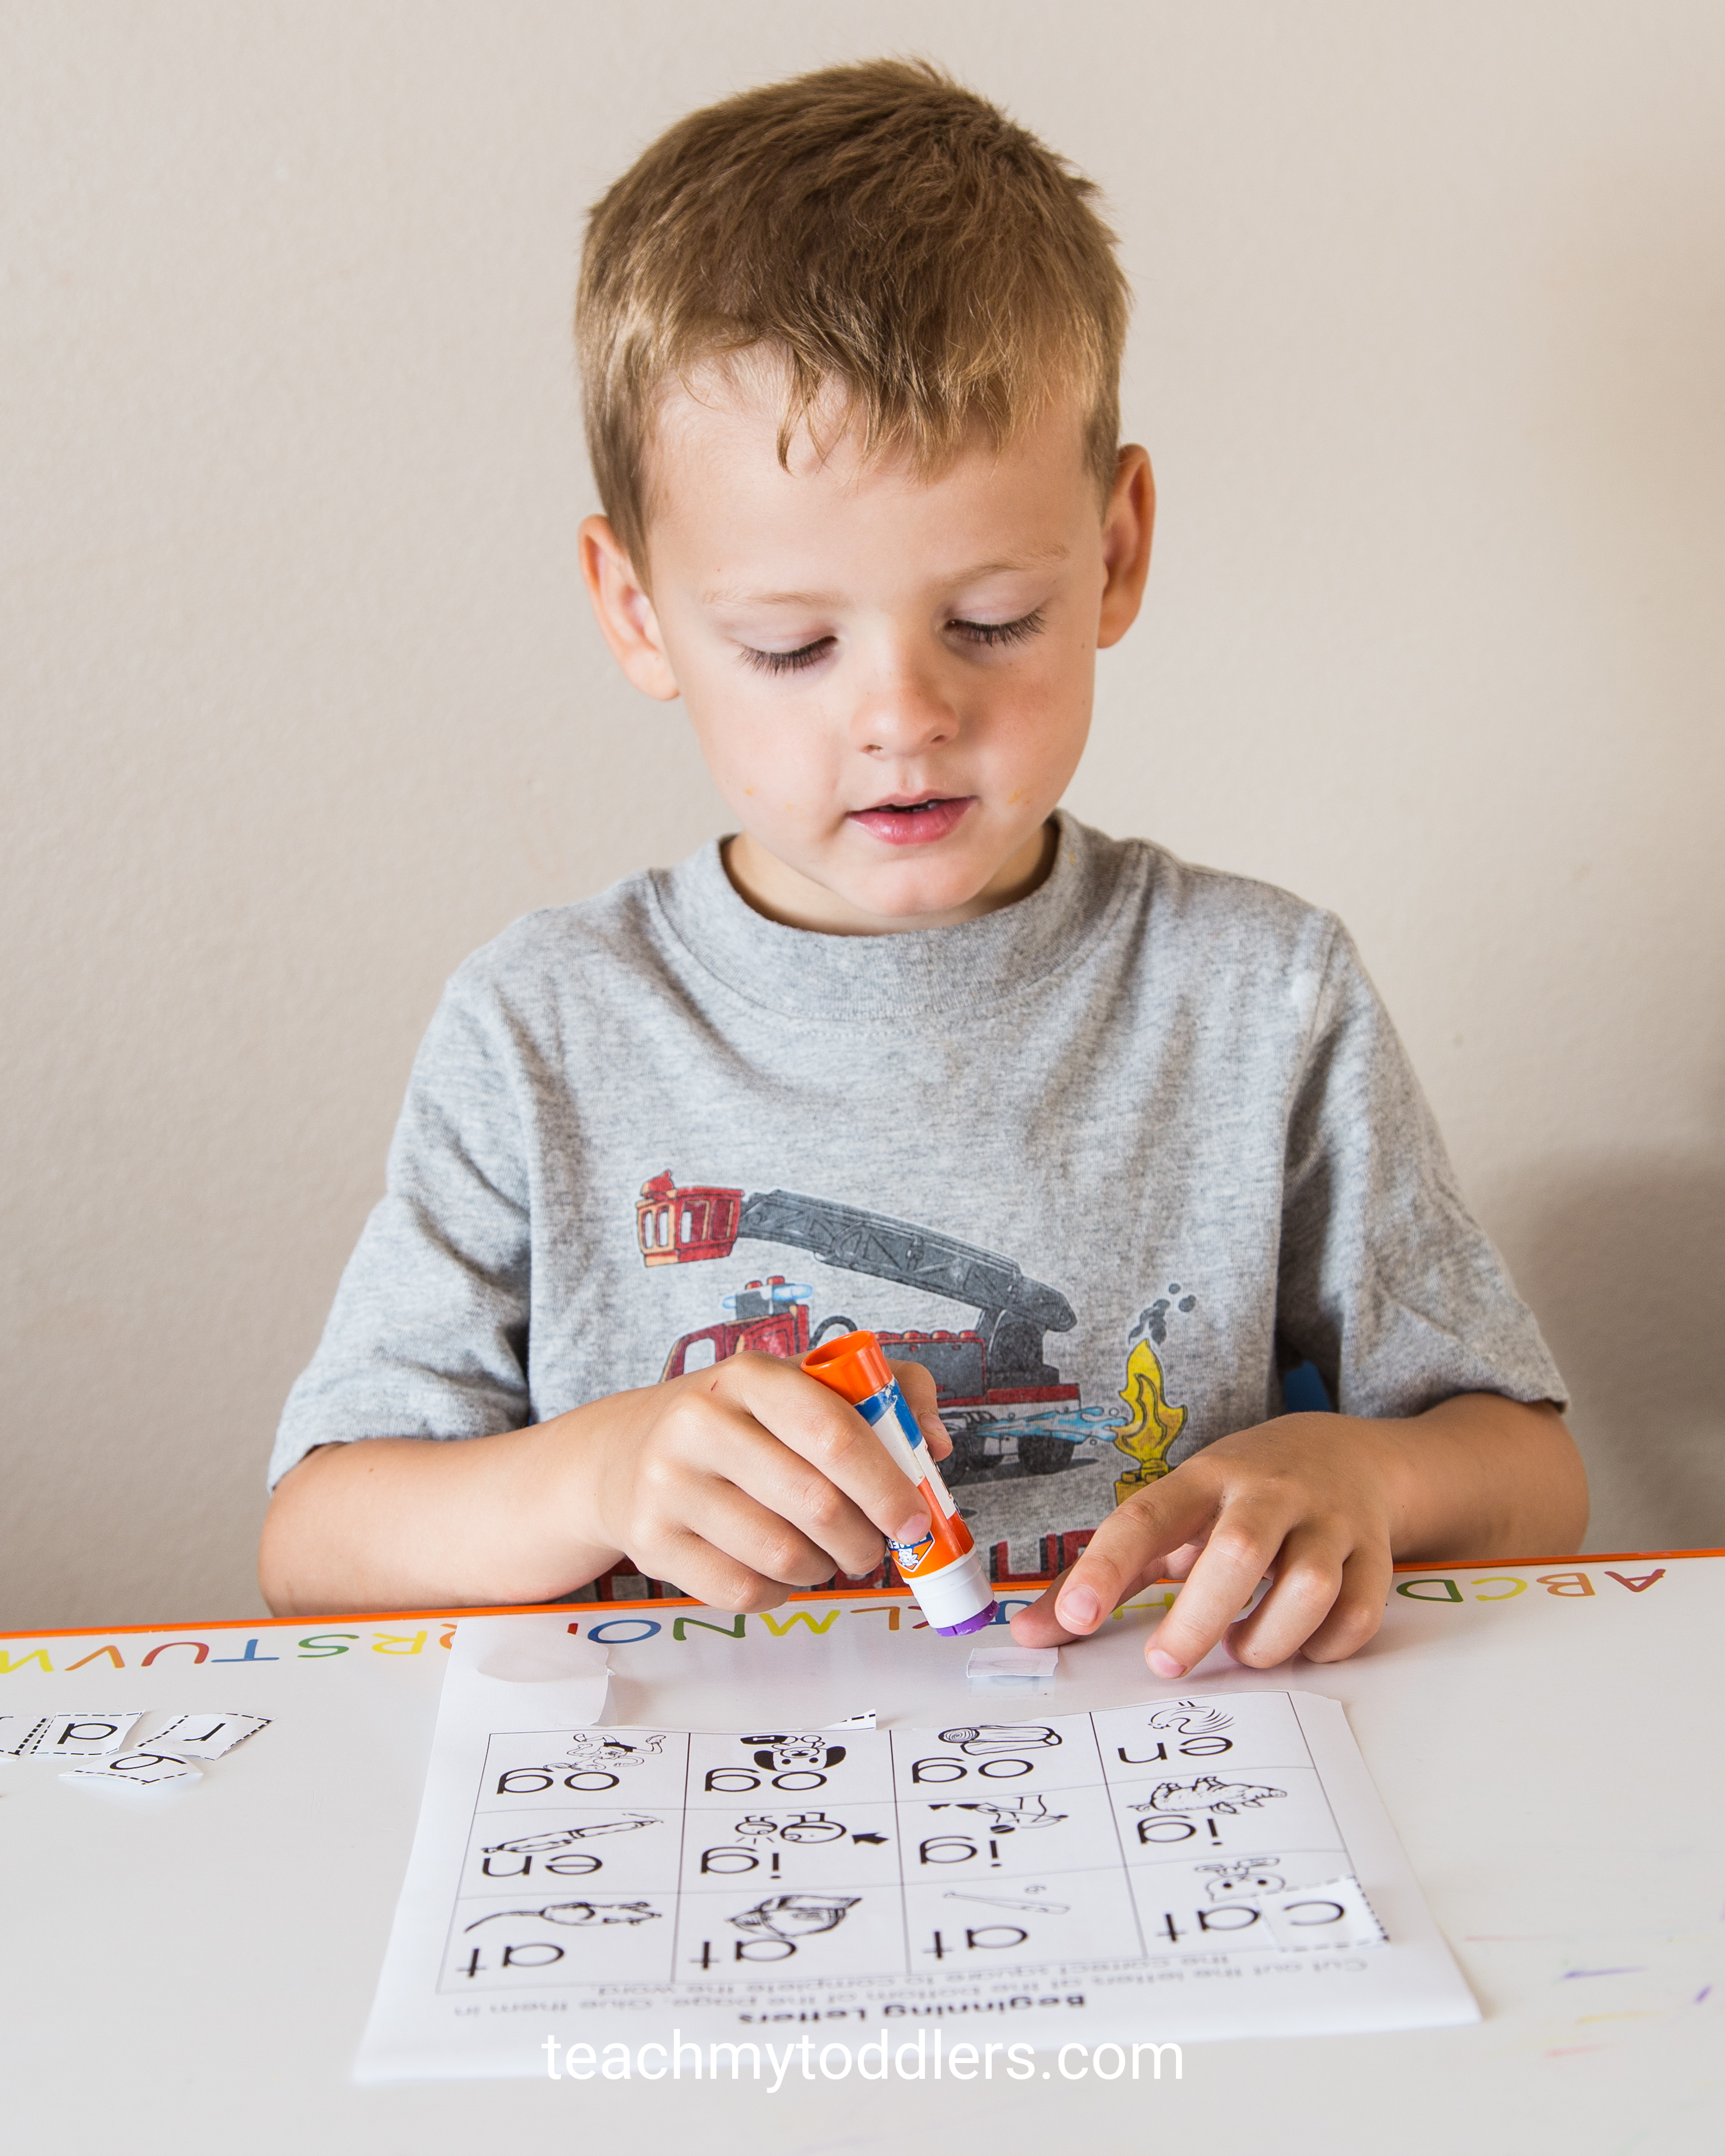 Discover how to use this cut and paste activity to teach preschoolers about letters